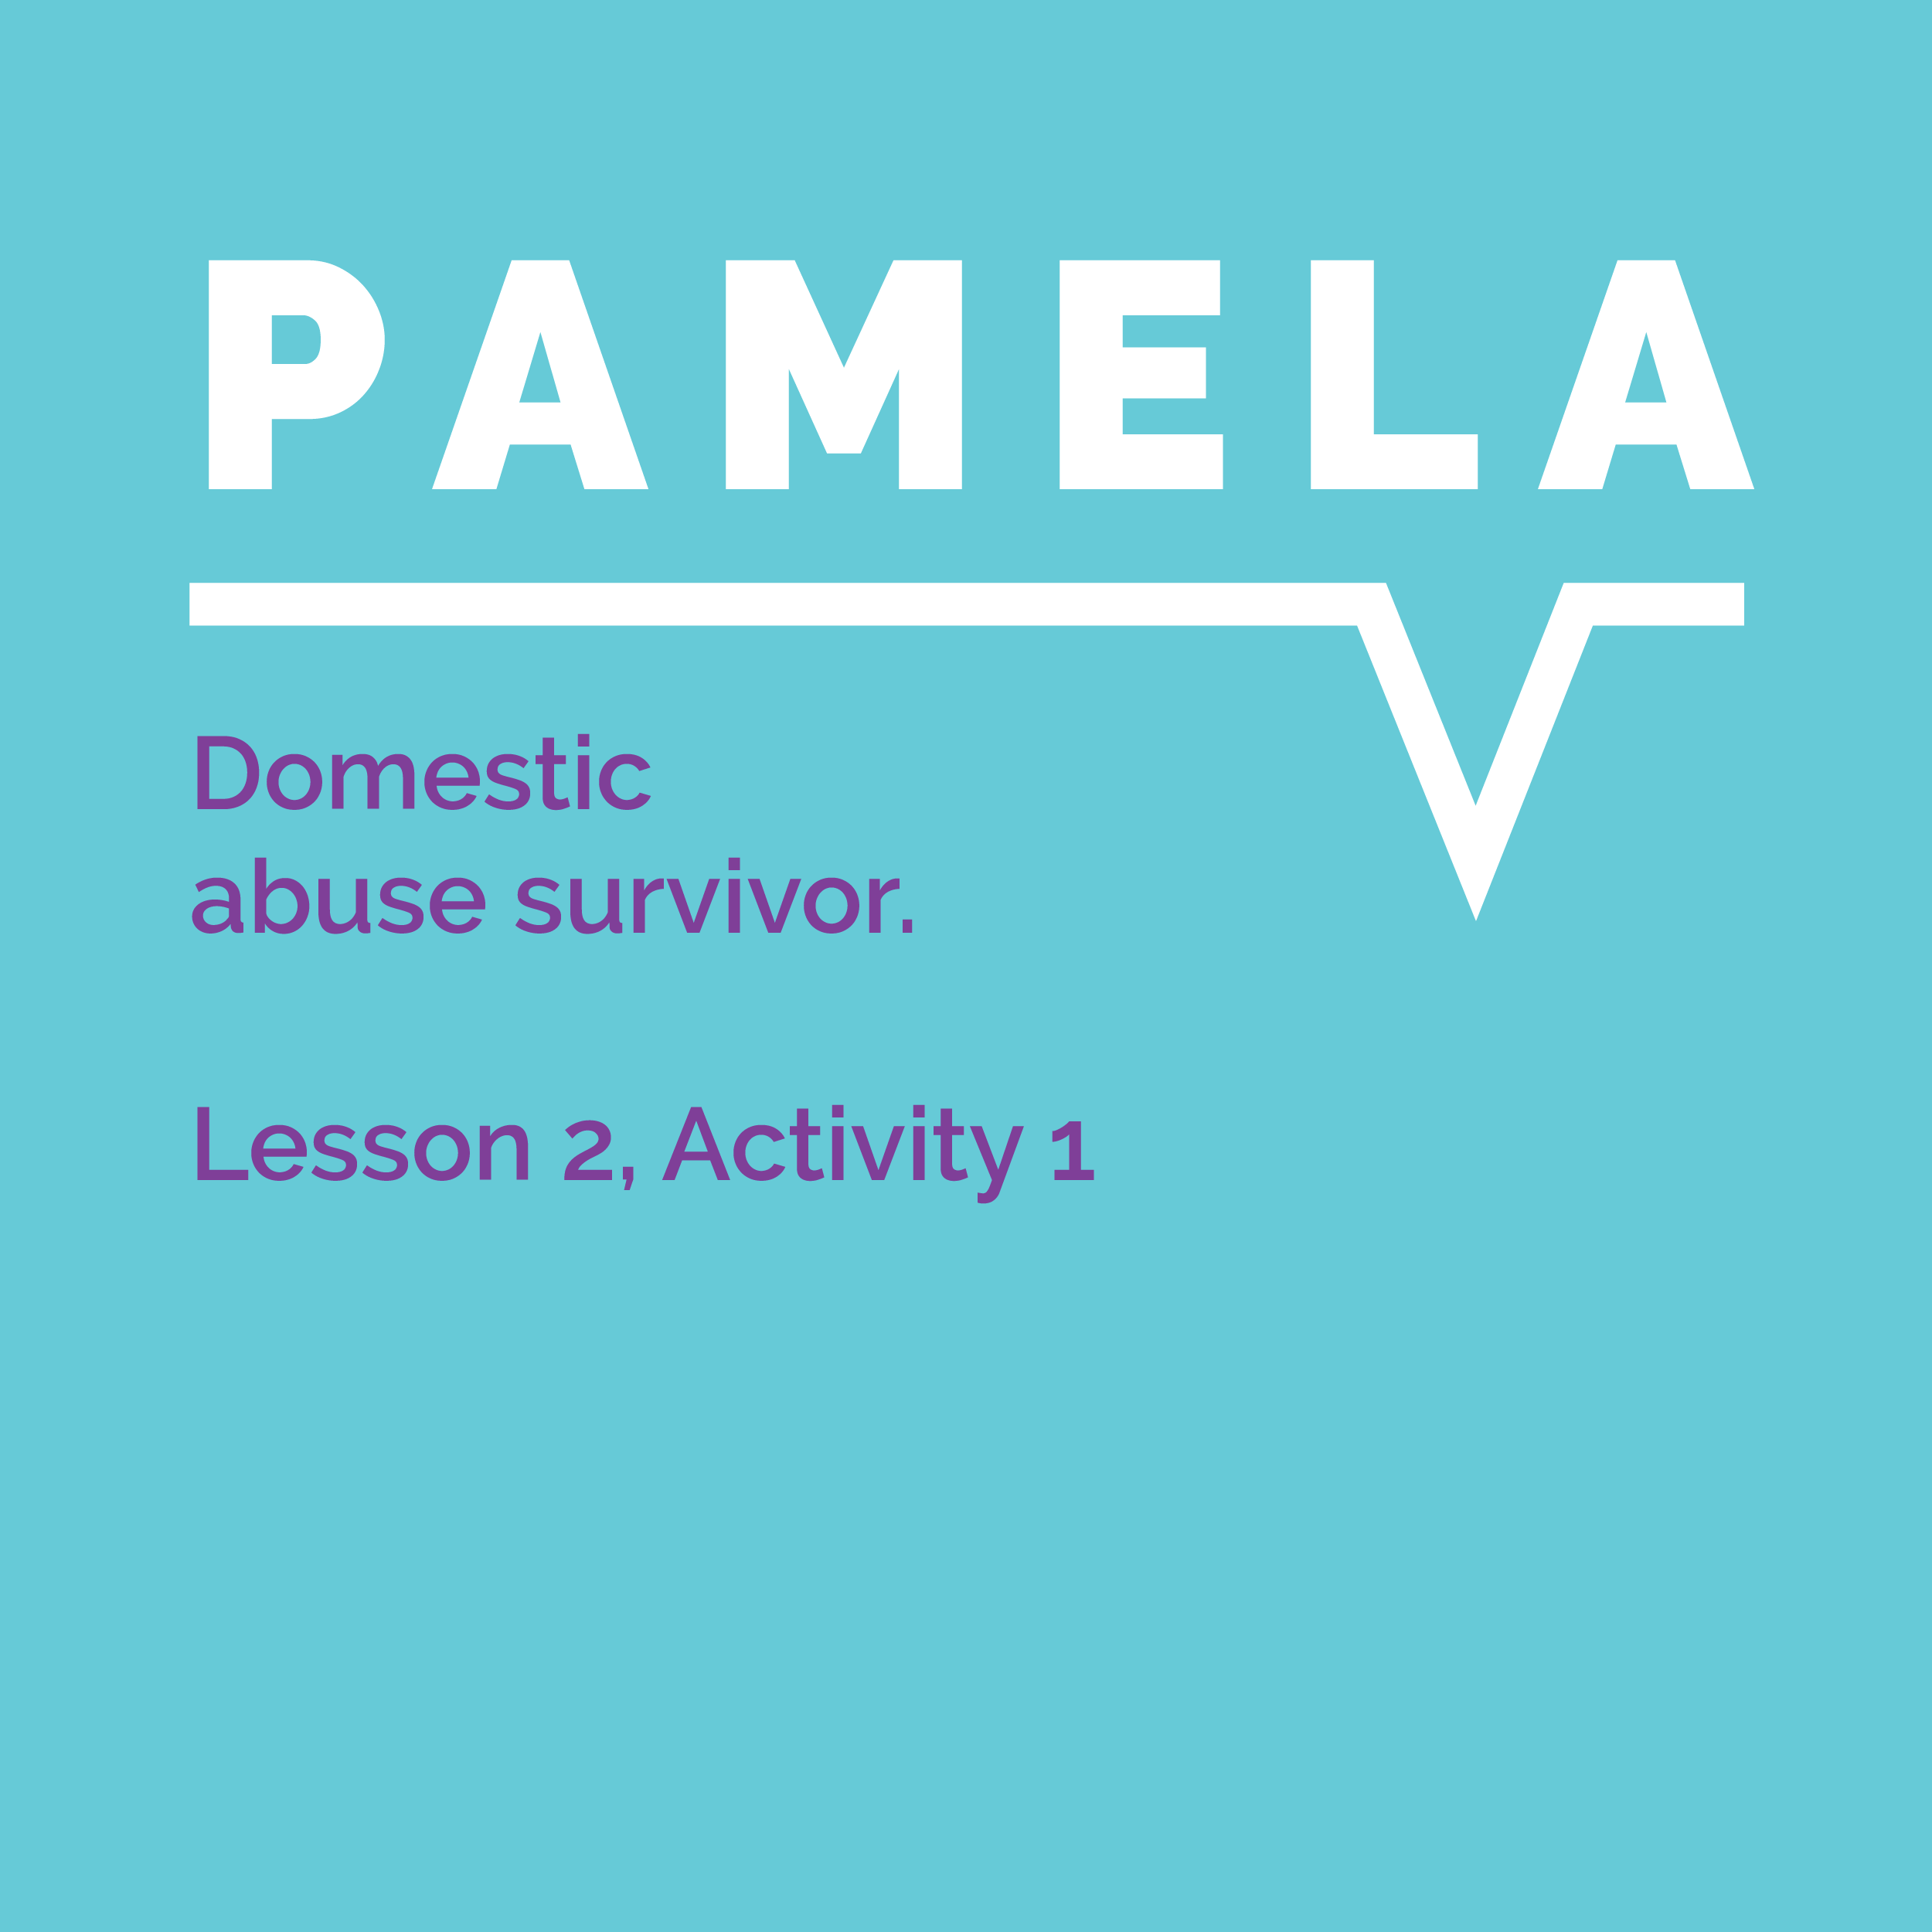 Speaking Out Learning Resource, Lesson 2, Activity 1: Pamela, domestic abuse survivor